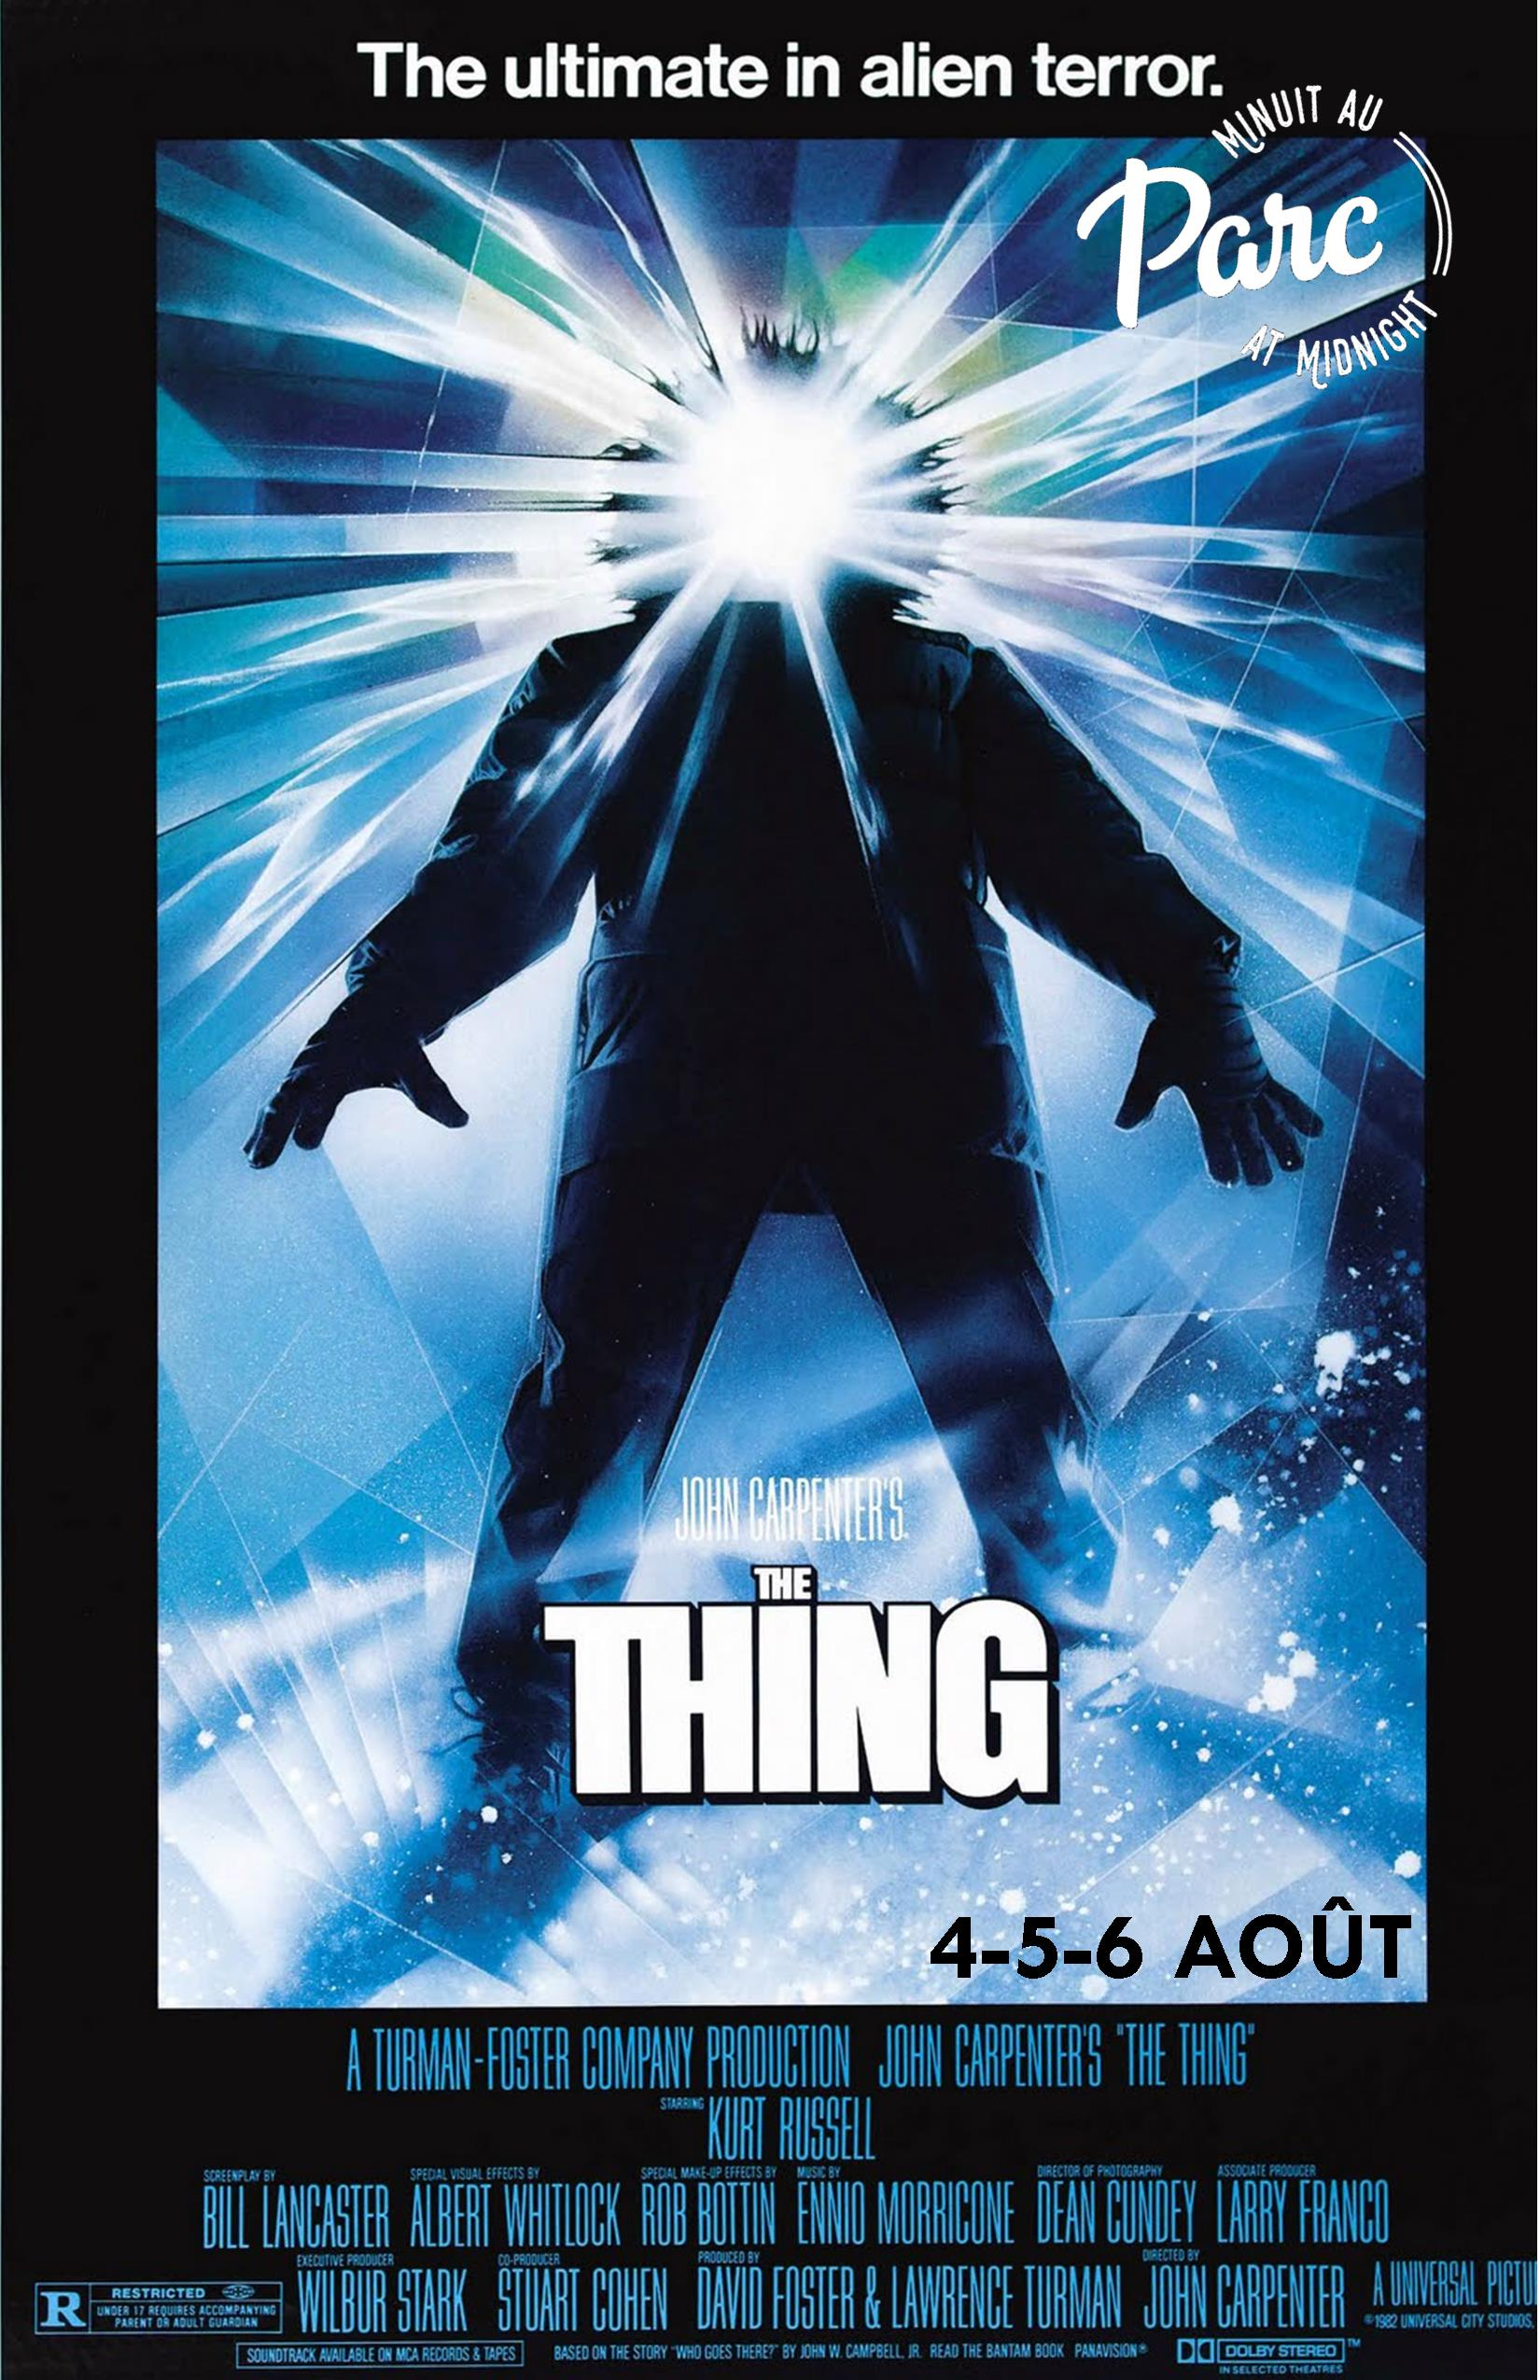 PARC AT MIDNIGHT: THE THING